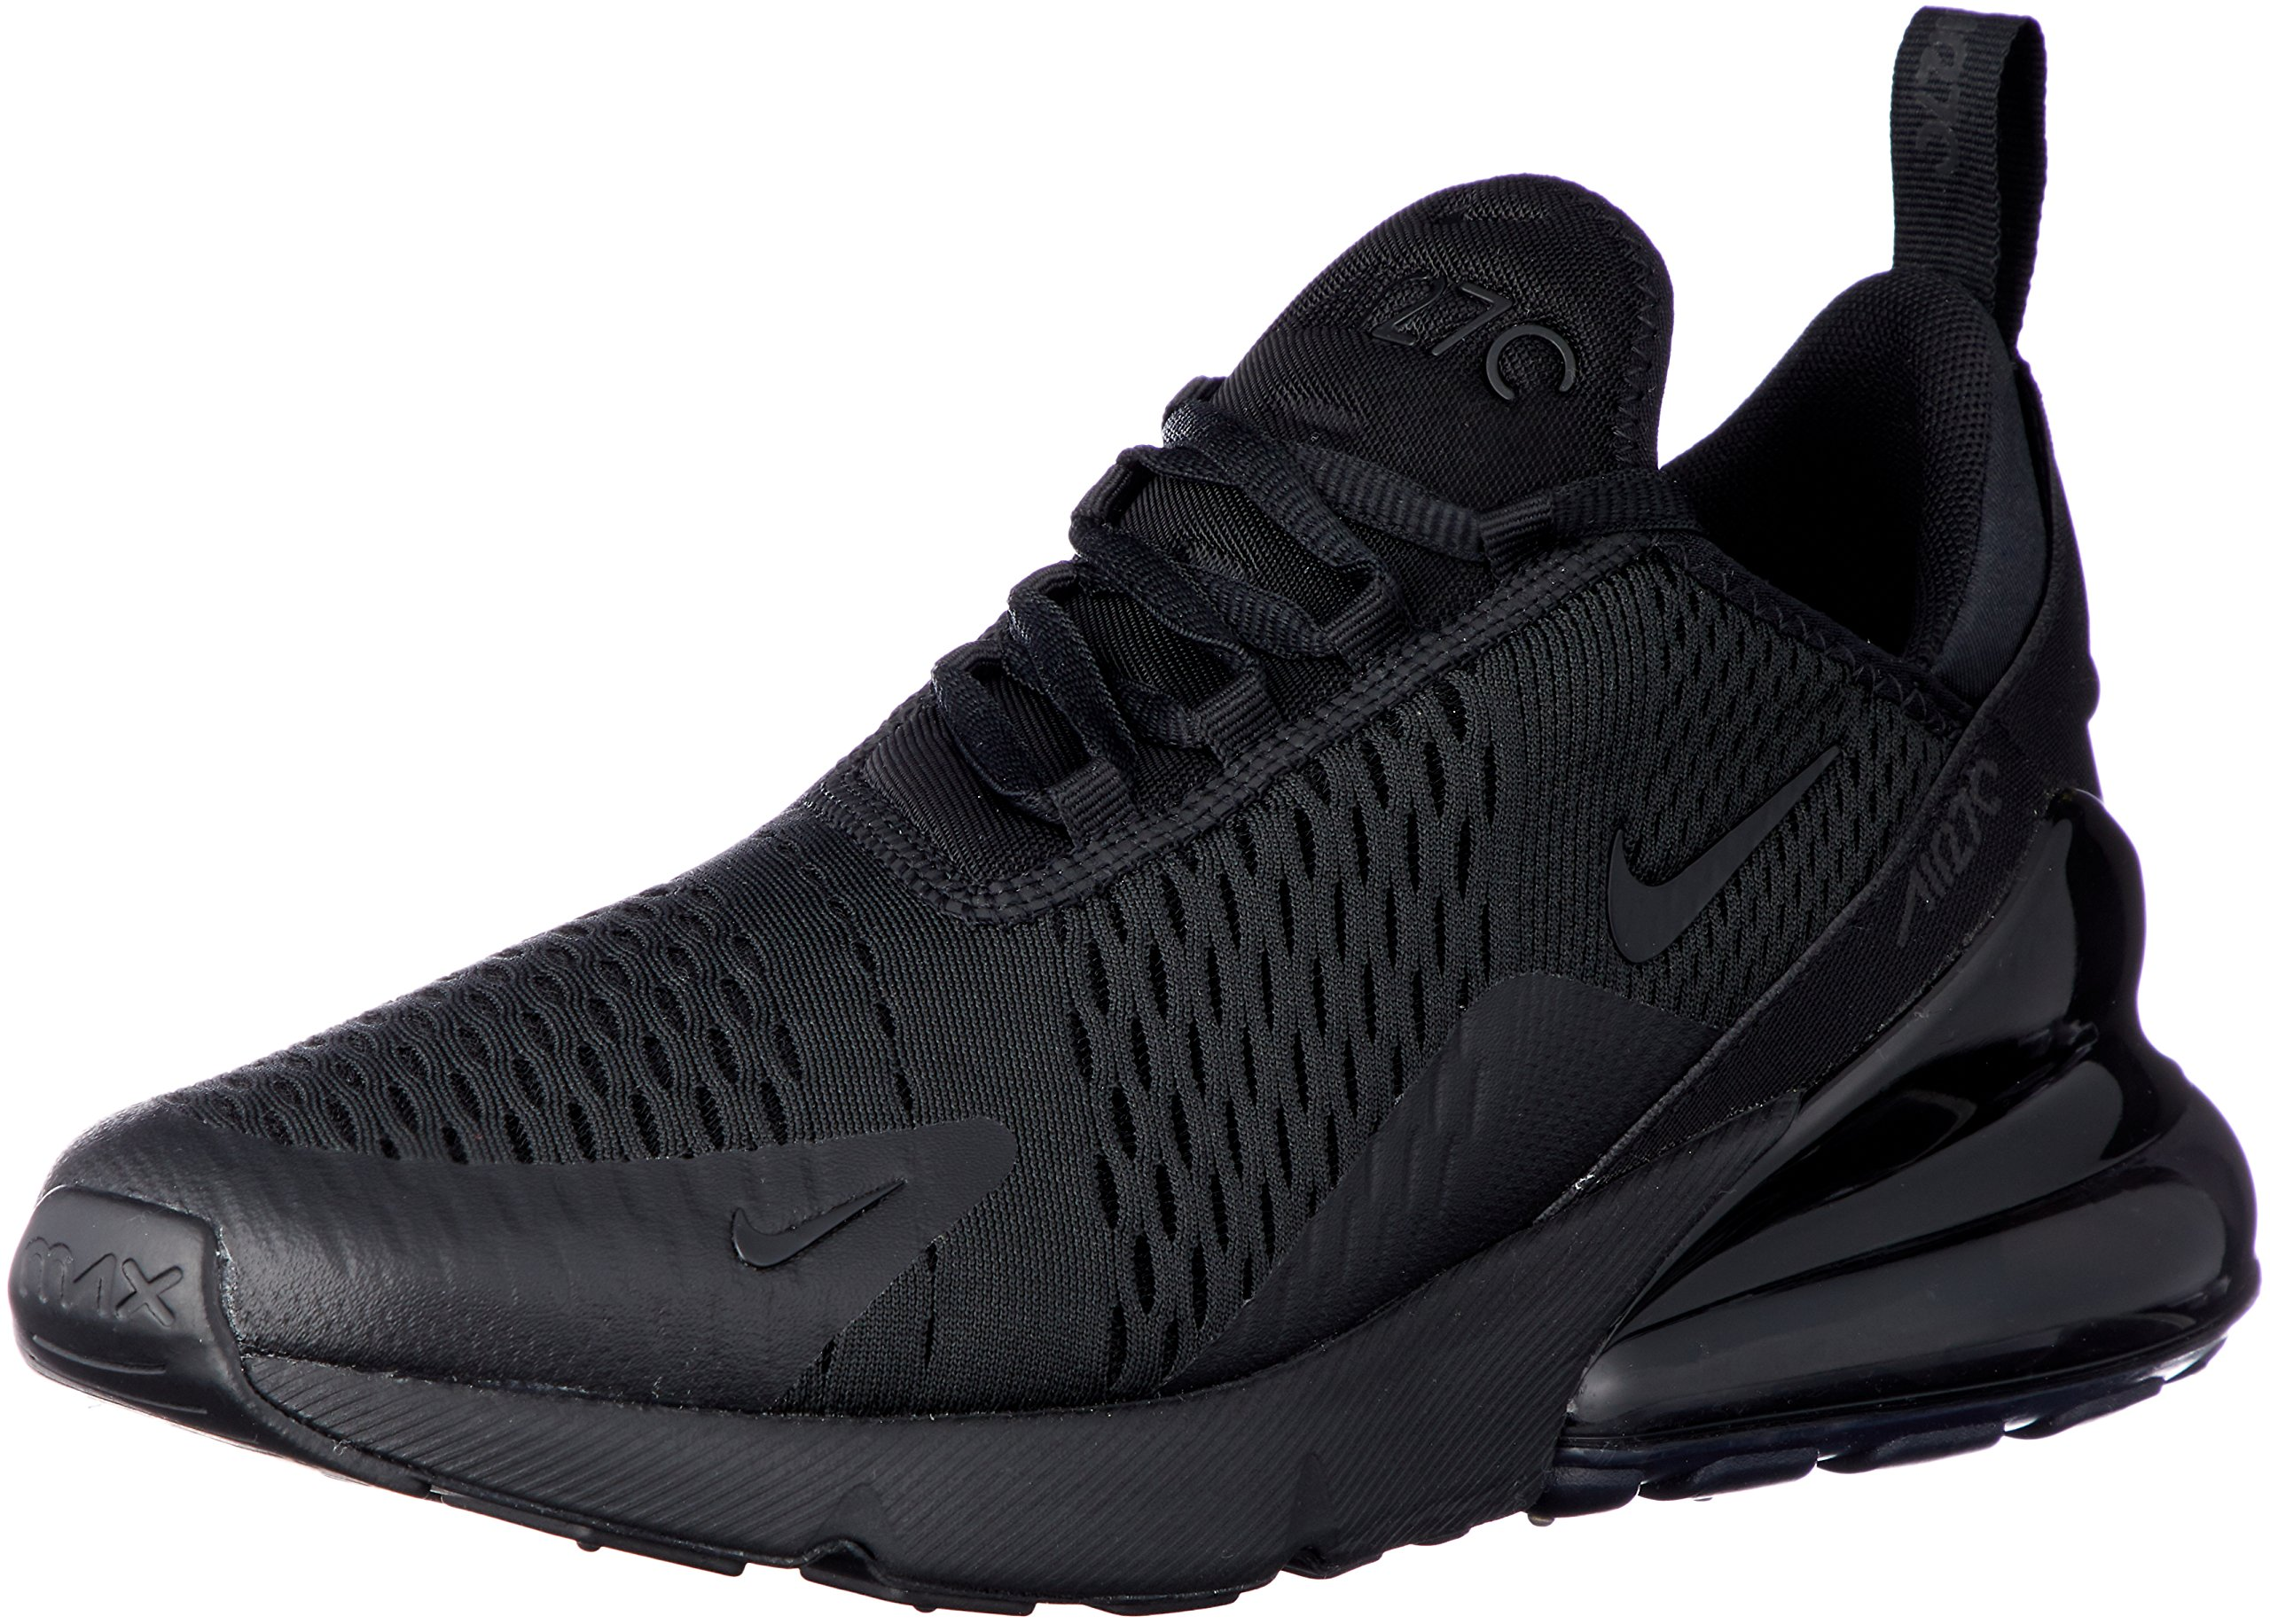 Galleon - Nike Air Max 270 Men s Running Shoes Black Black-Black AH8050-005  (10.5 D(M) US) 029b762ca